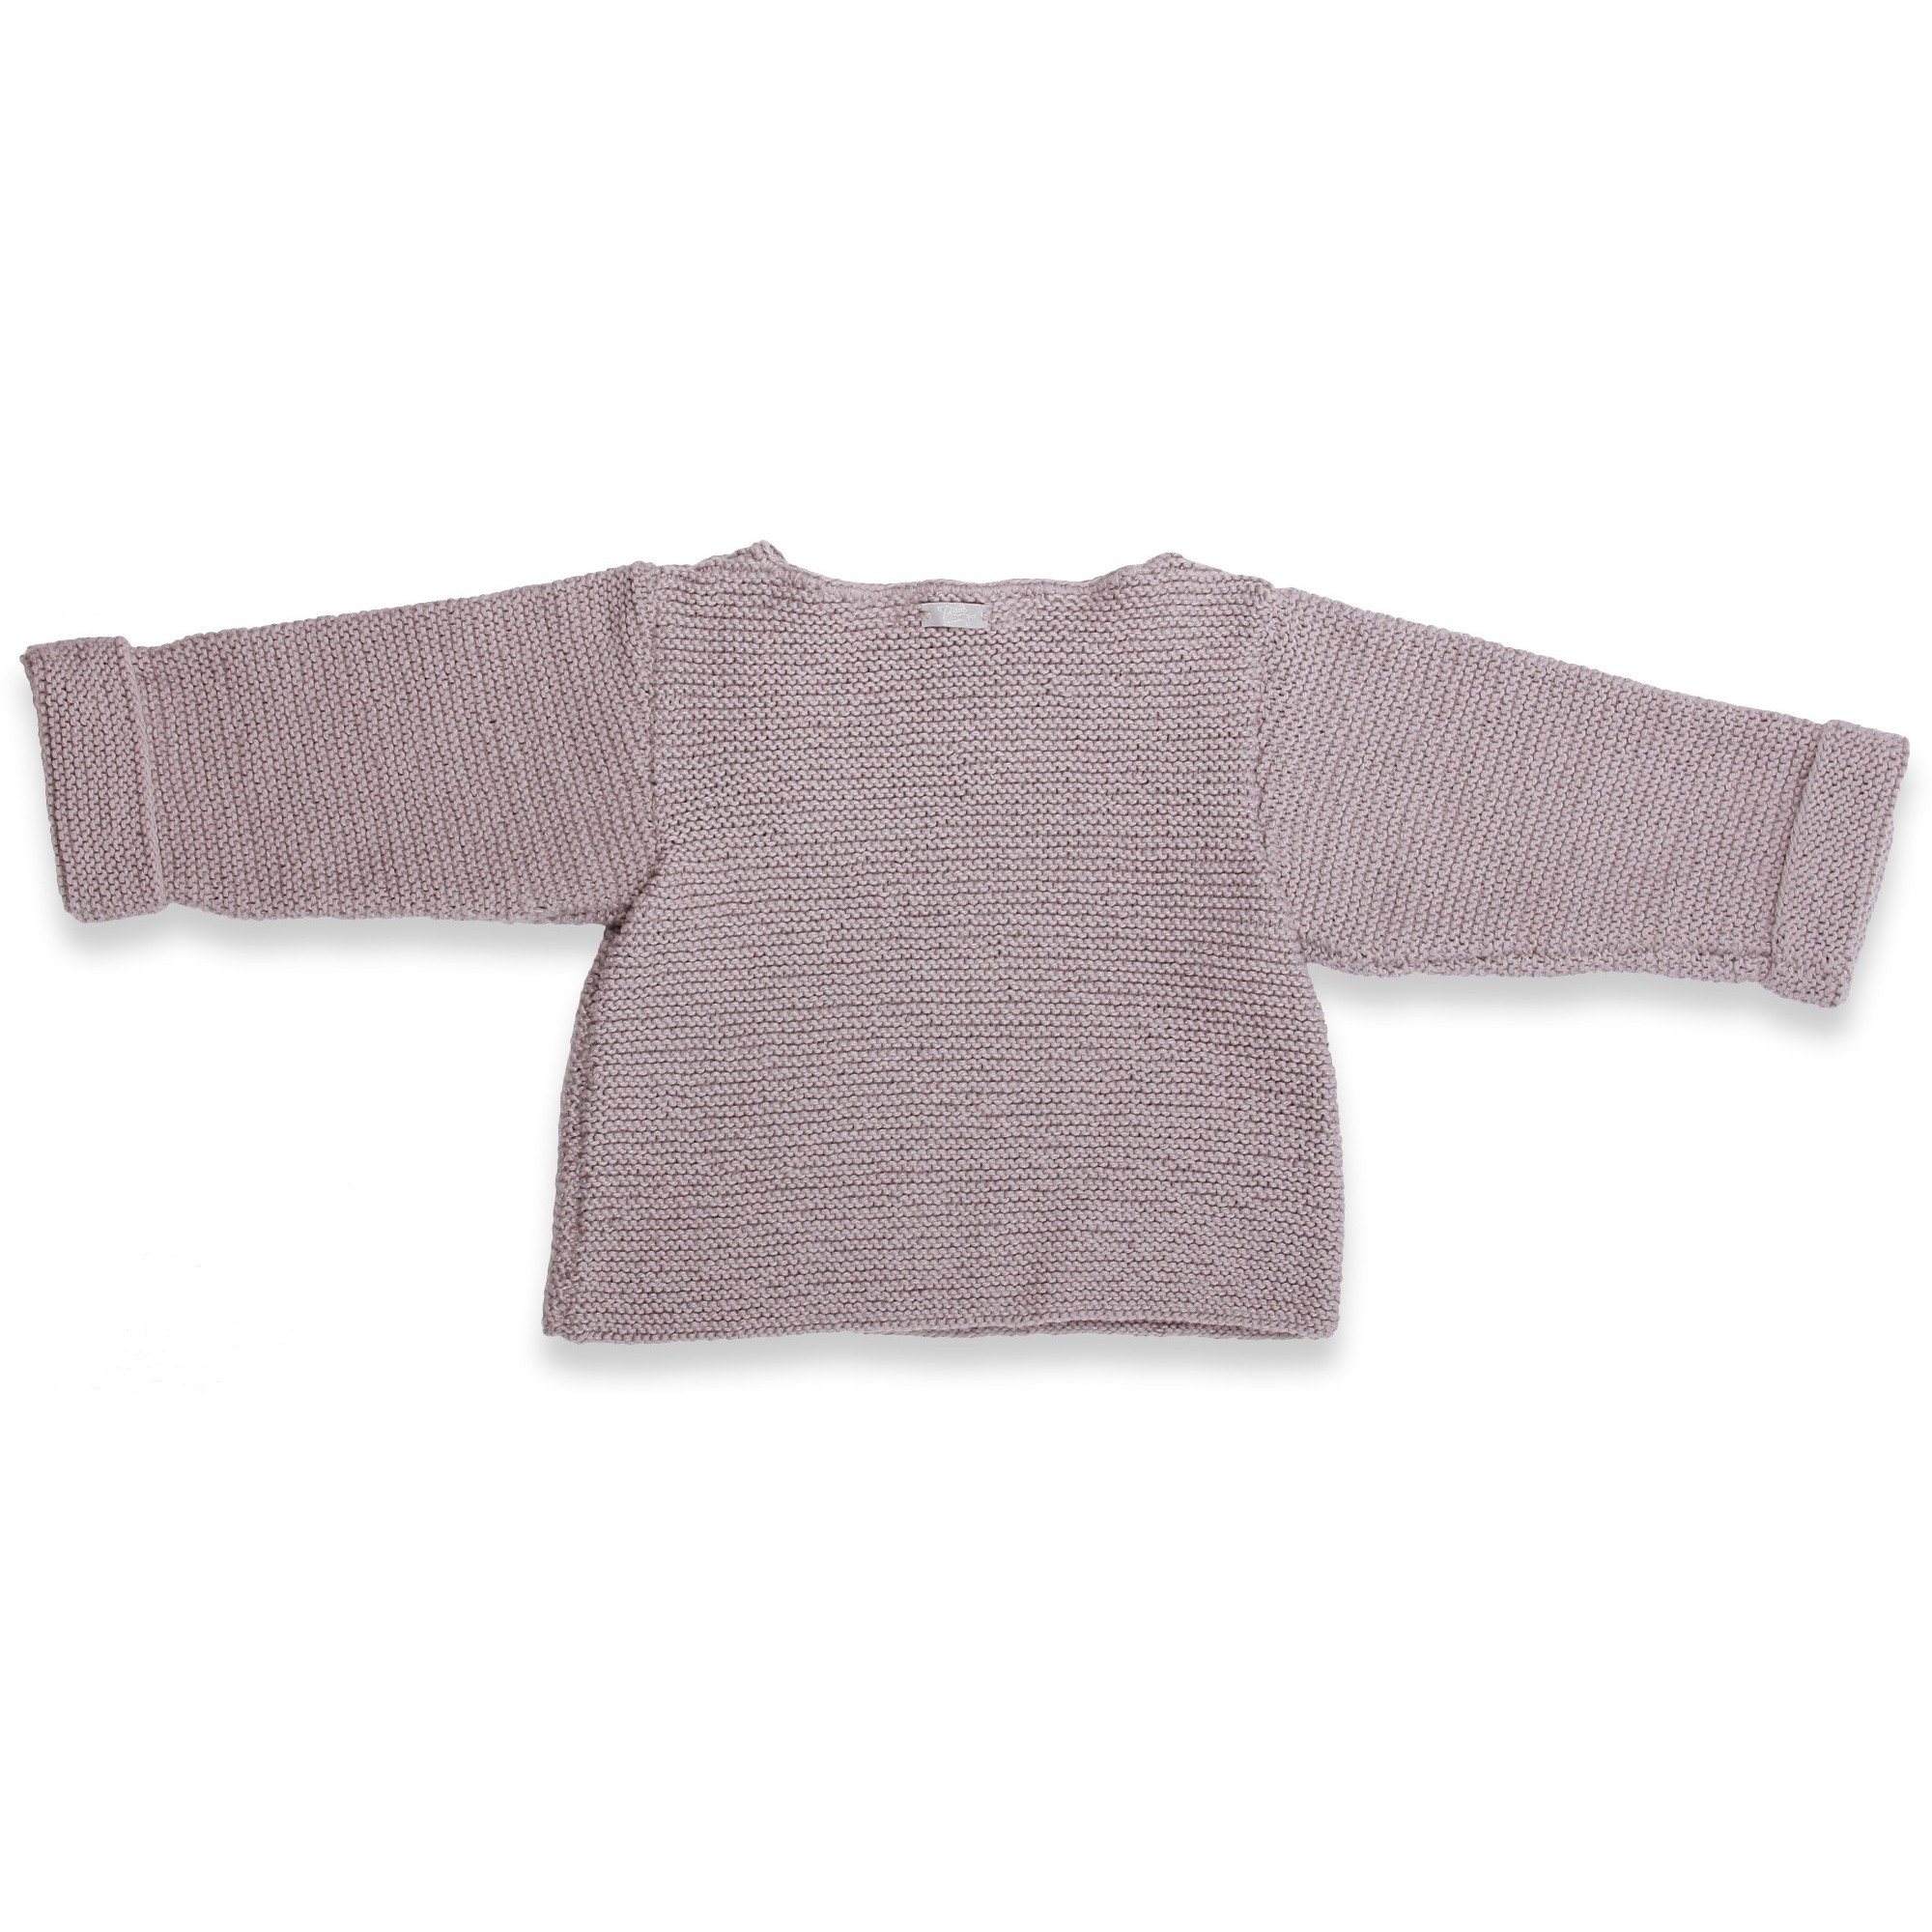 Grey baby sweater knitted in moss stitches made from cotton and cashmere - back